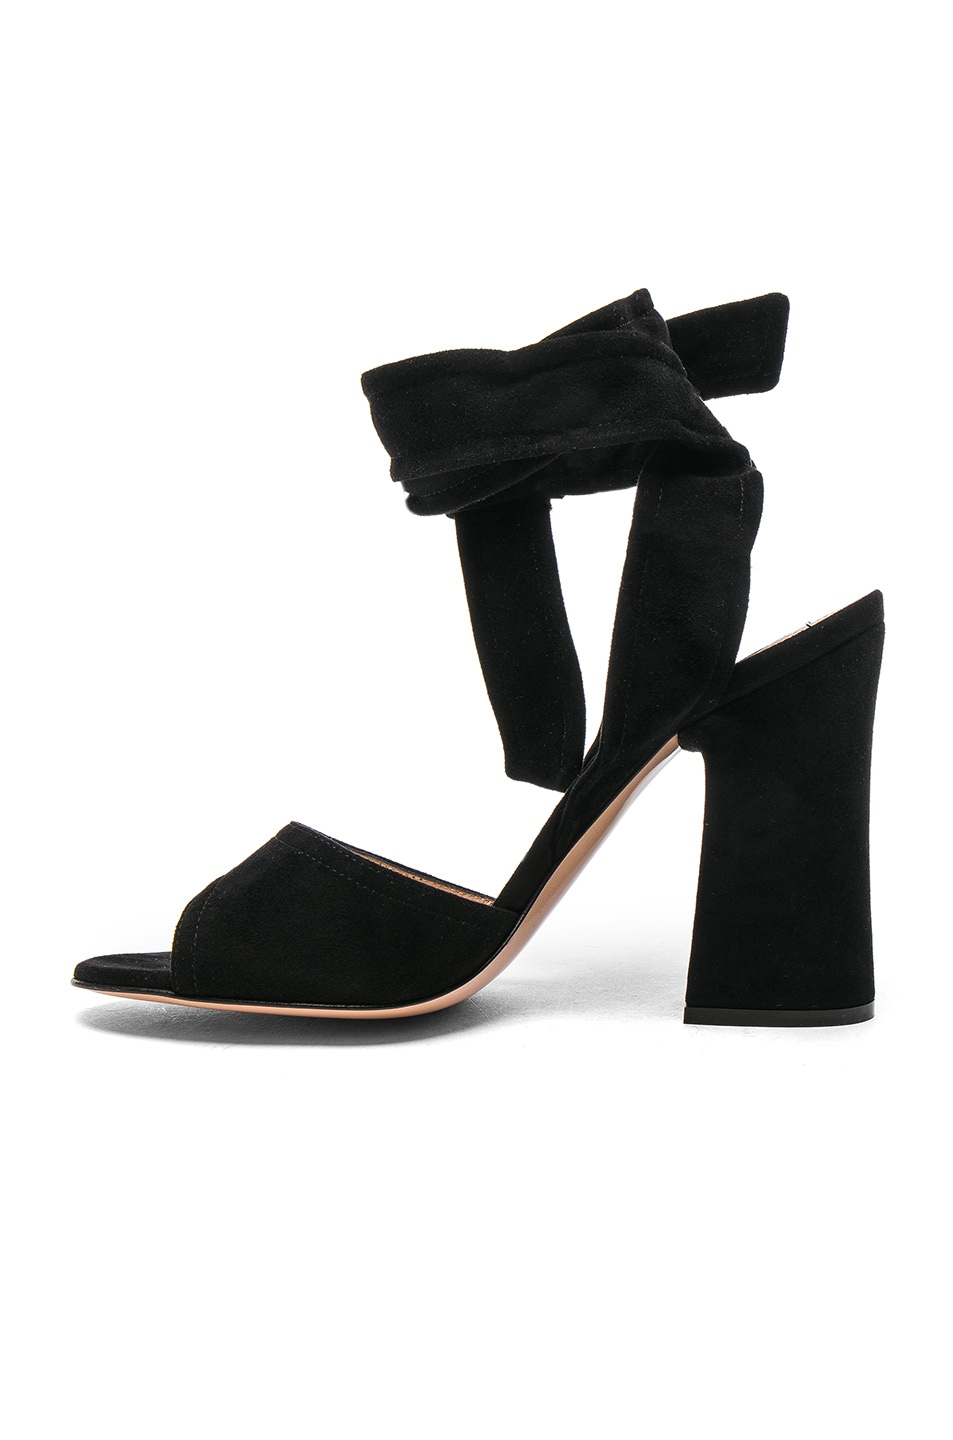 Image 5 of Gianvito Rossi Suede Ankle Tie Heels in Black